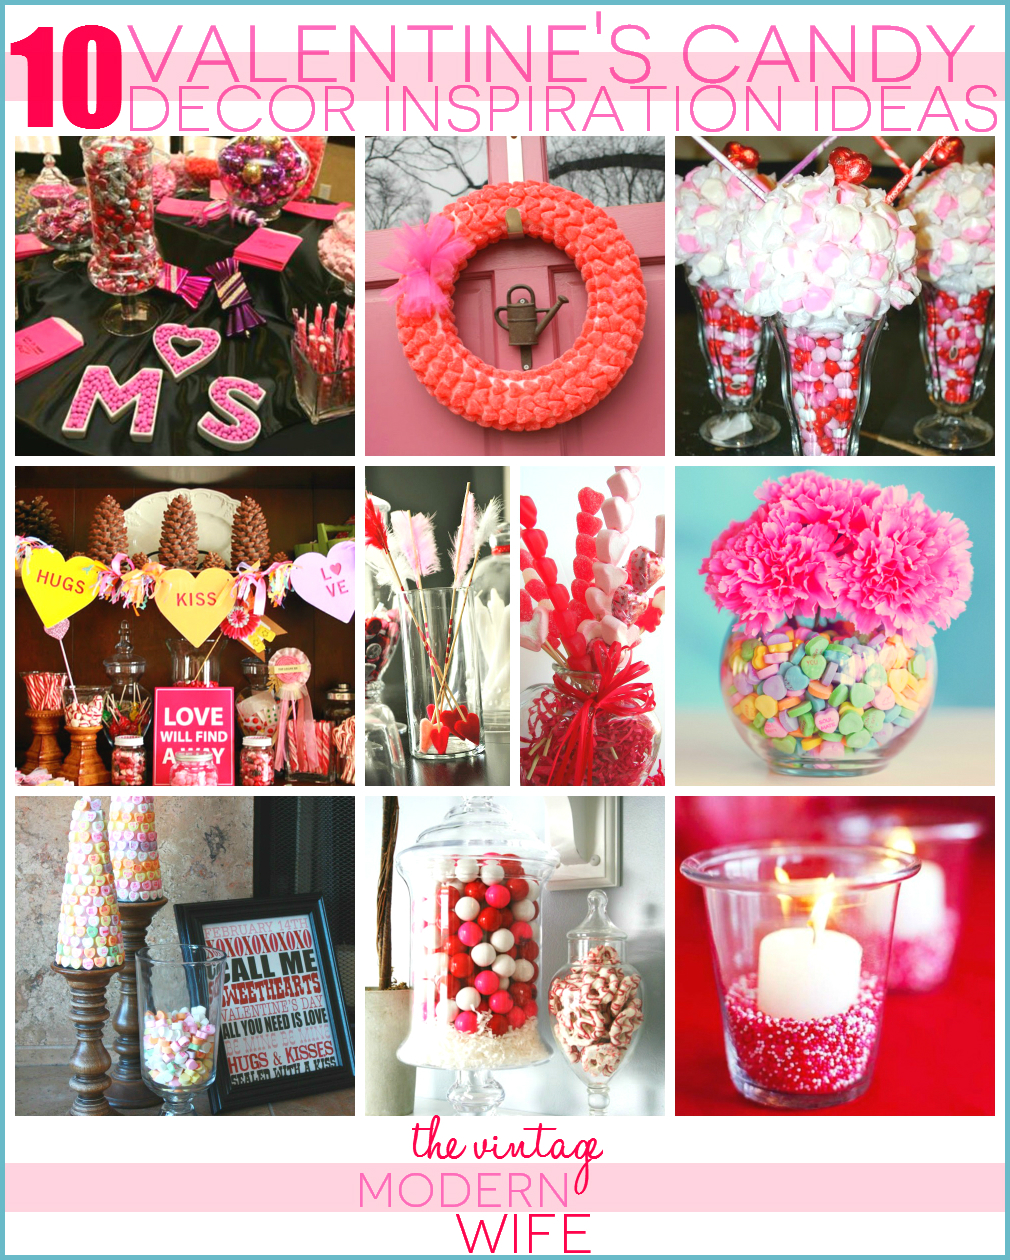 I'm absolutely loving all these Valentine's candy inspiration ideas from The Vintage Modern Wife! Definitely pinning this for Valentine's this year!